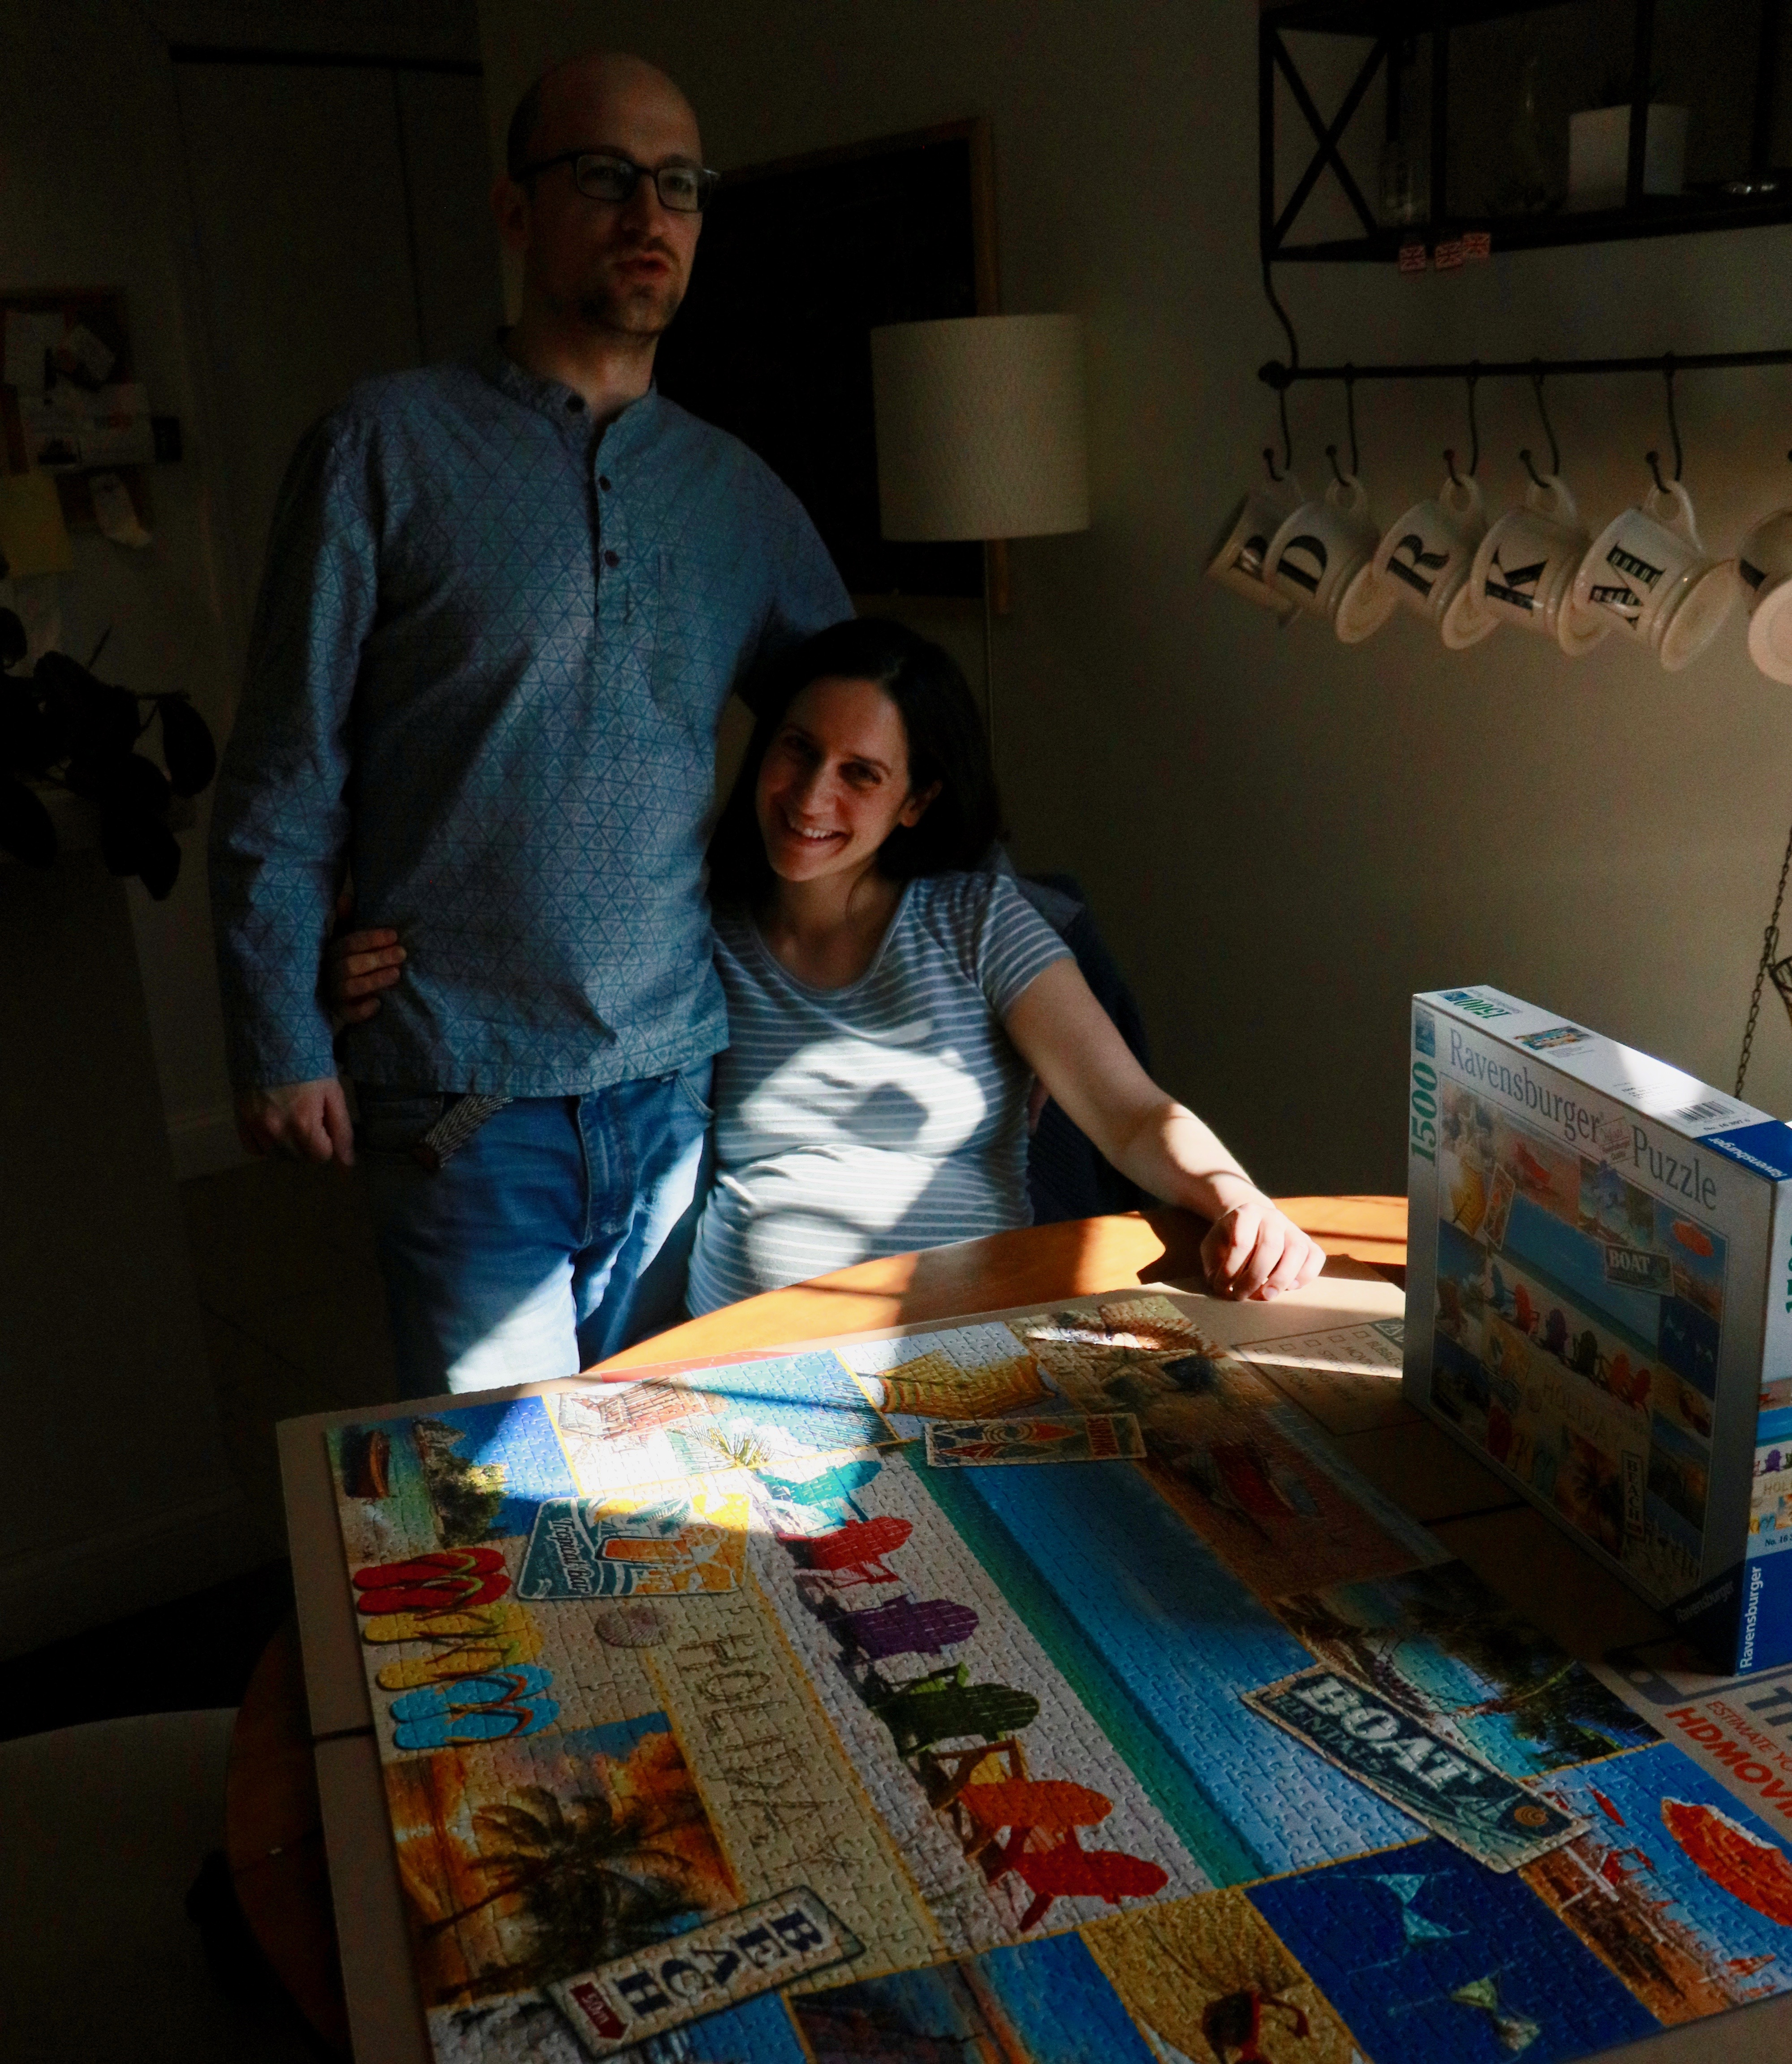 Young couple near jigsaw puzzle in shaft of sunlight